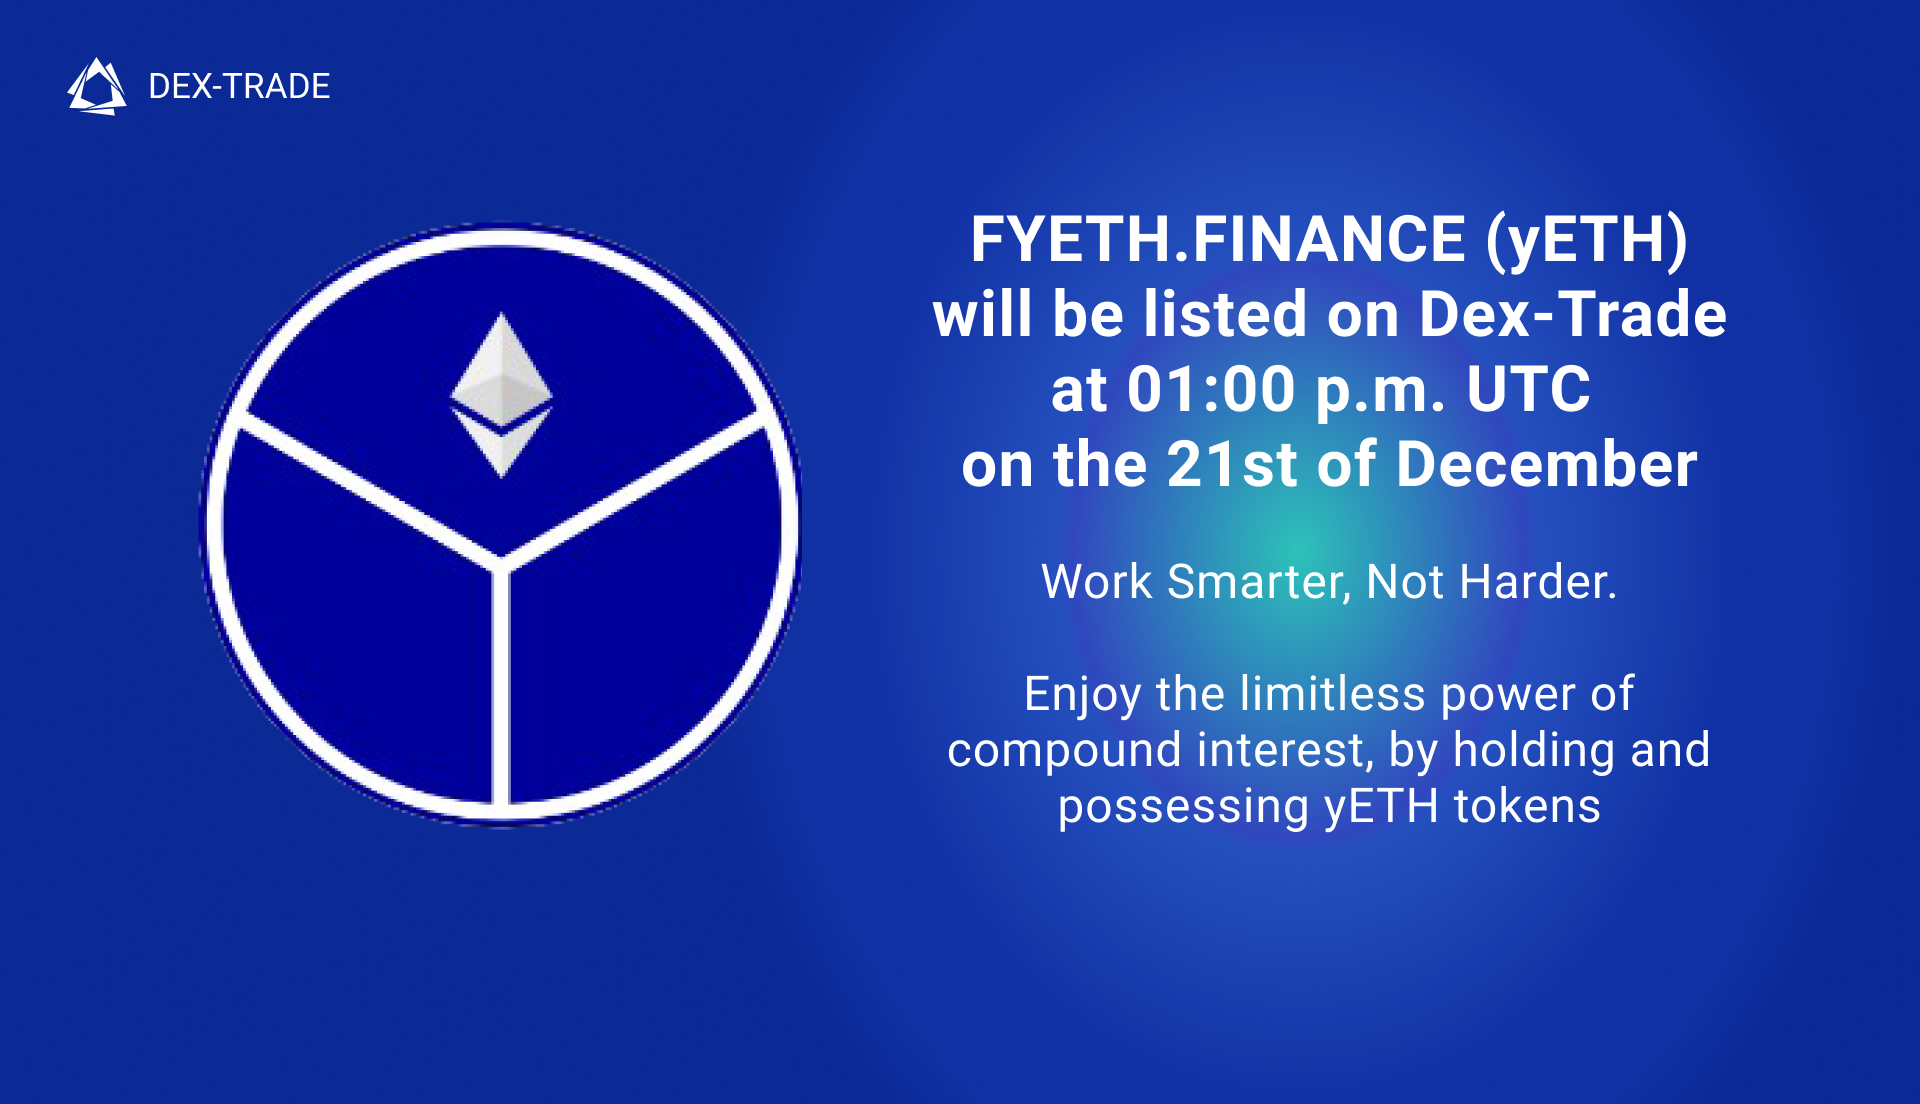 FYETH.FINANCE (yETH) will be listed on Dex-Trade Exchange